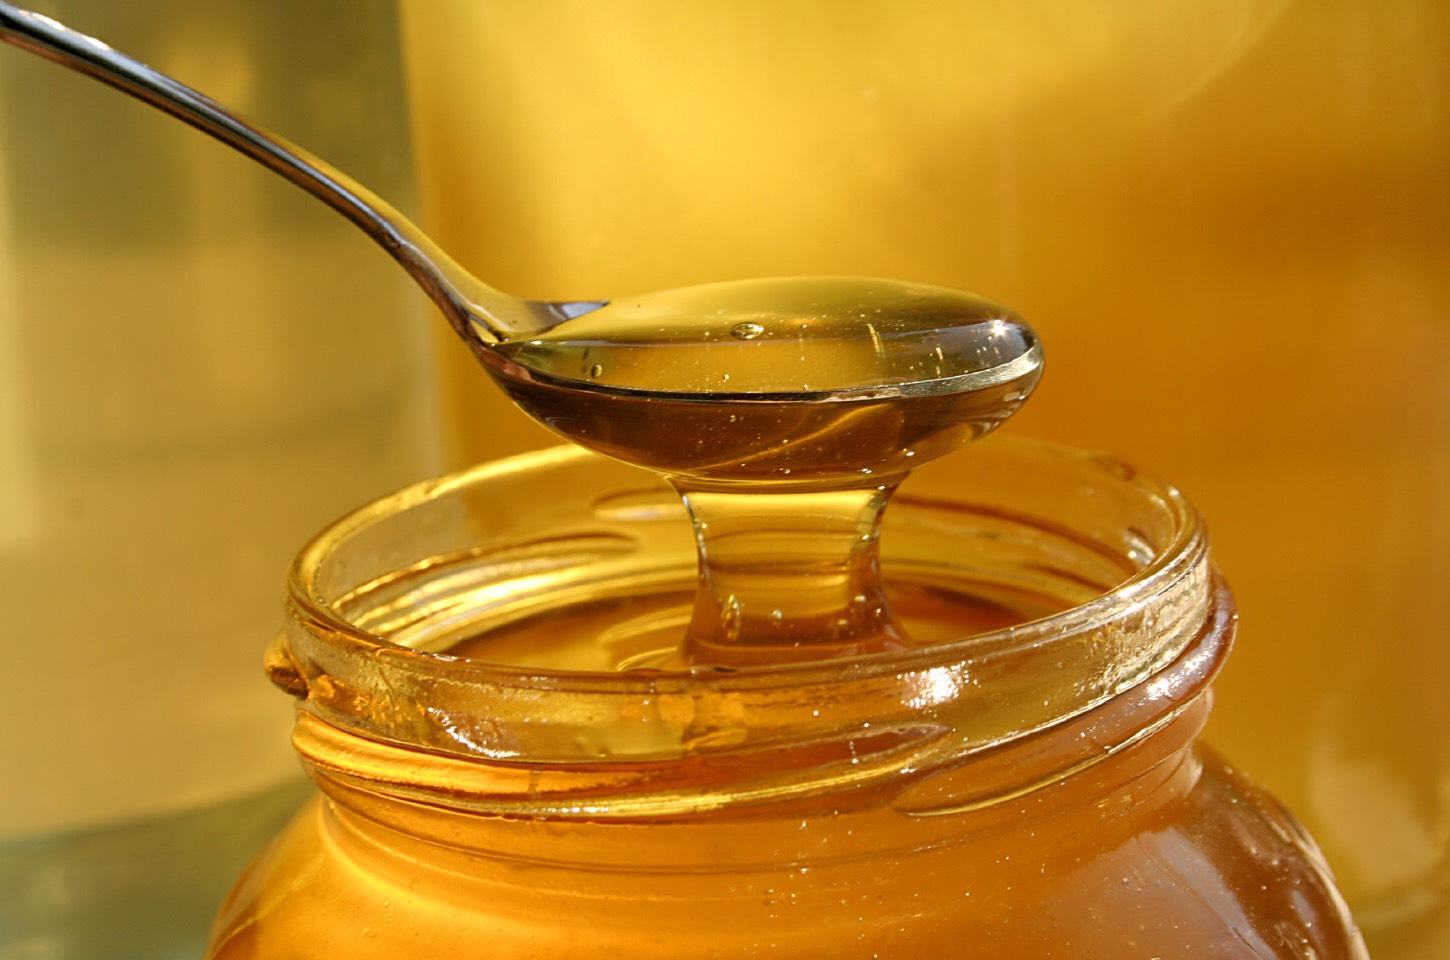 Next, take 1 teaspoon of honey and mix it with the milk in the small bowl